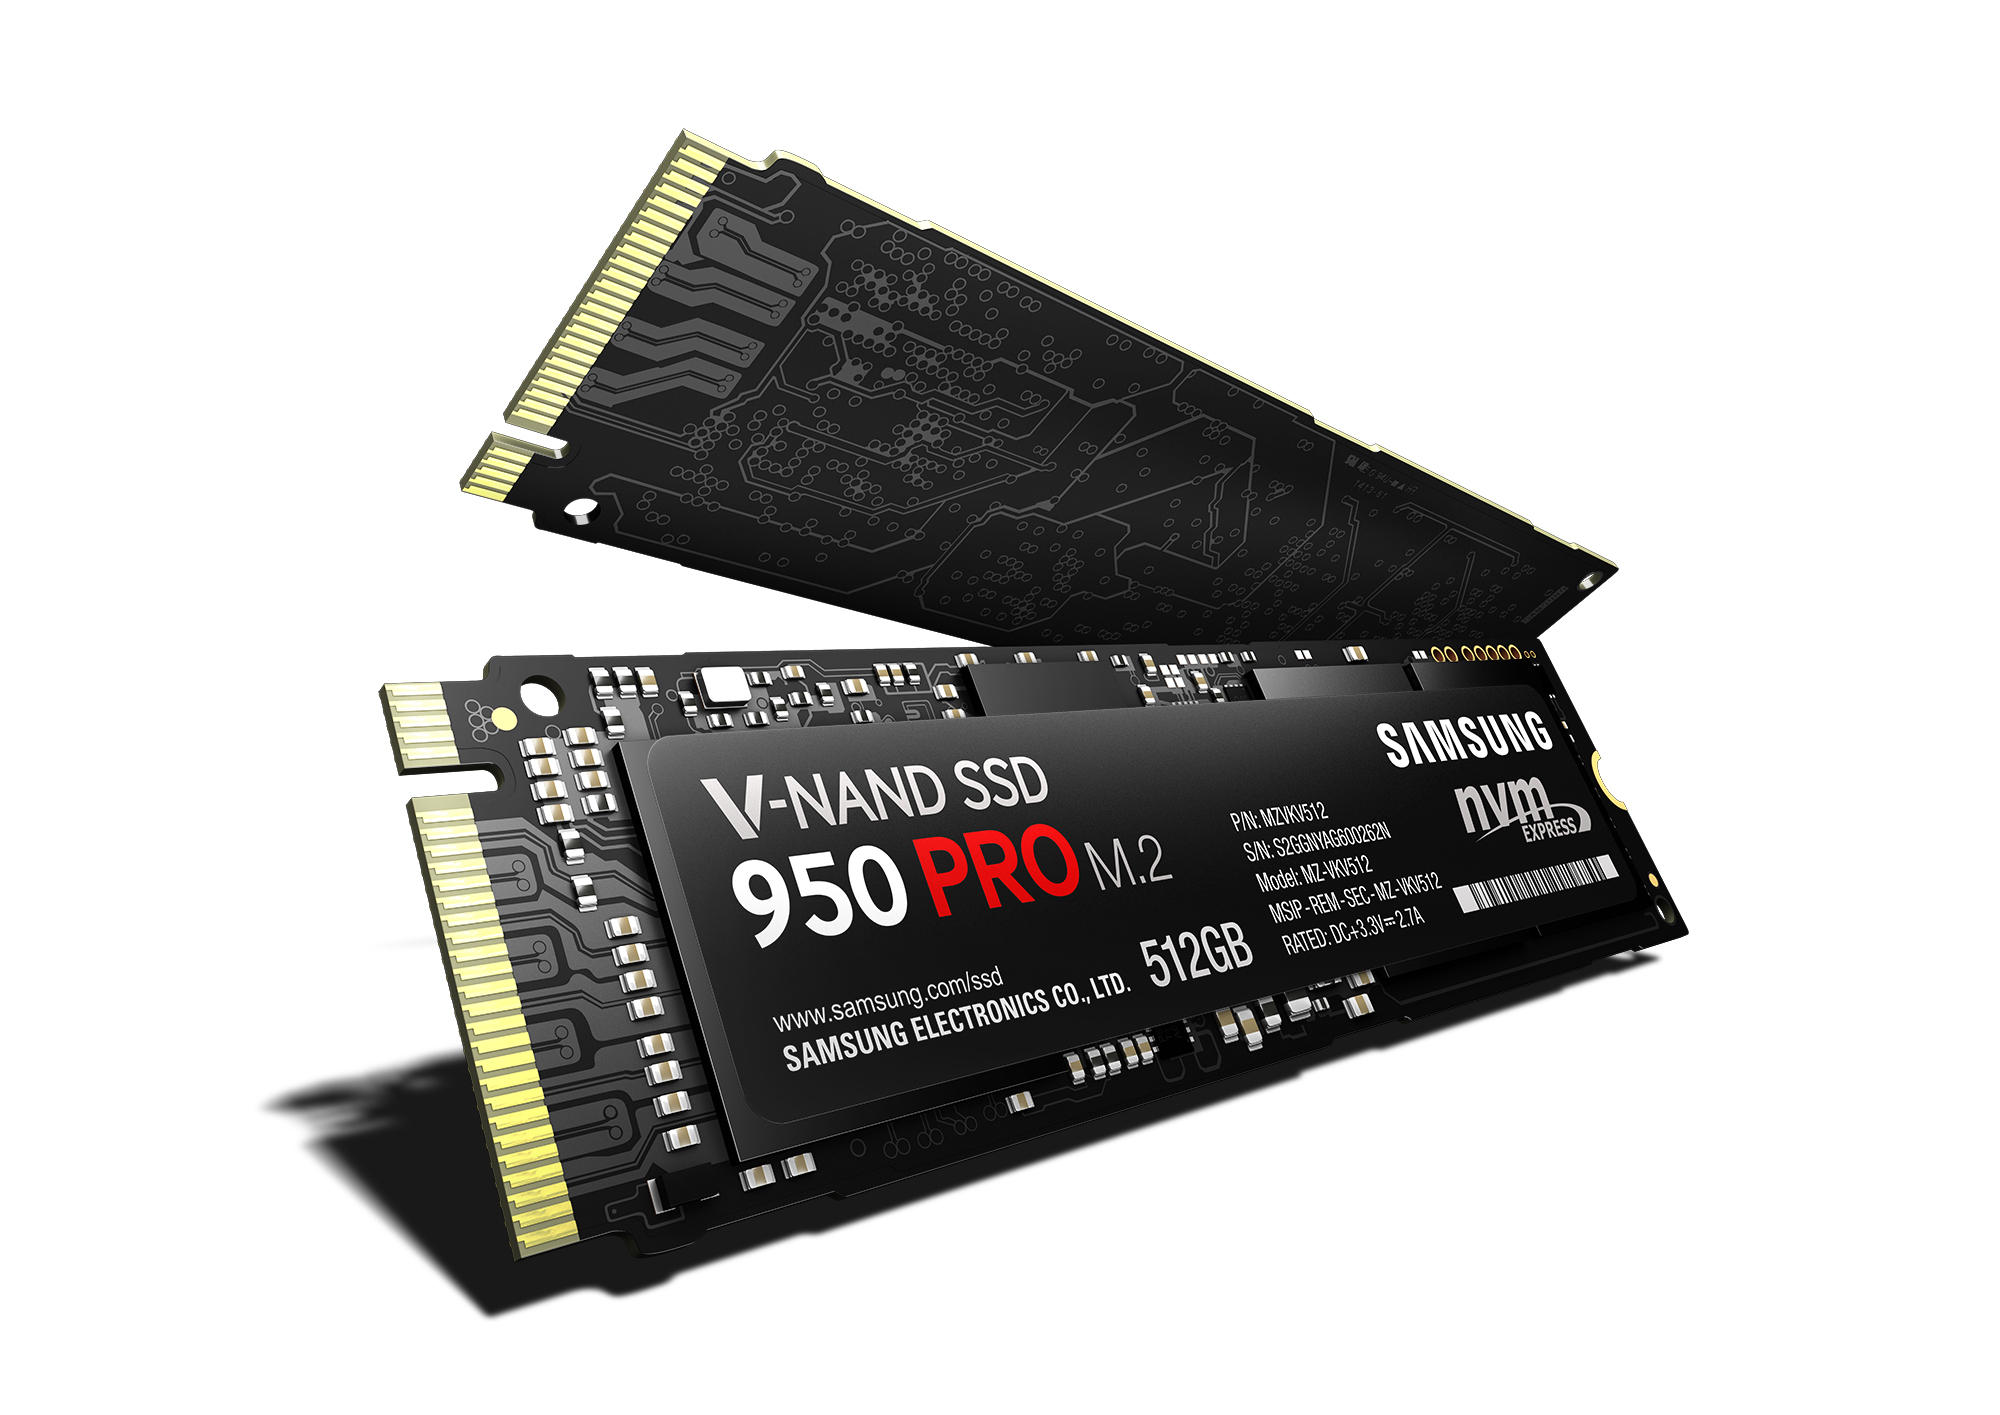 SAMSUNG 950 PRO M.2 512GB PCIe 3.0 x4 Internal Solid State Drive